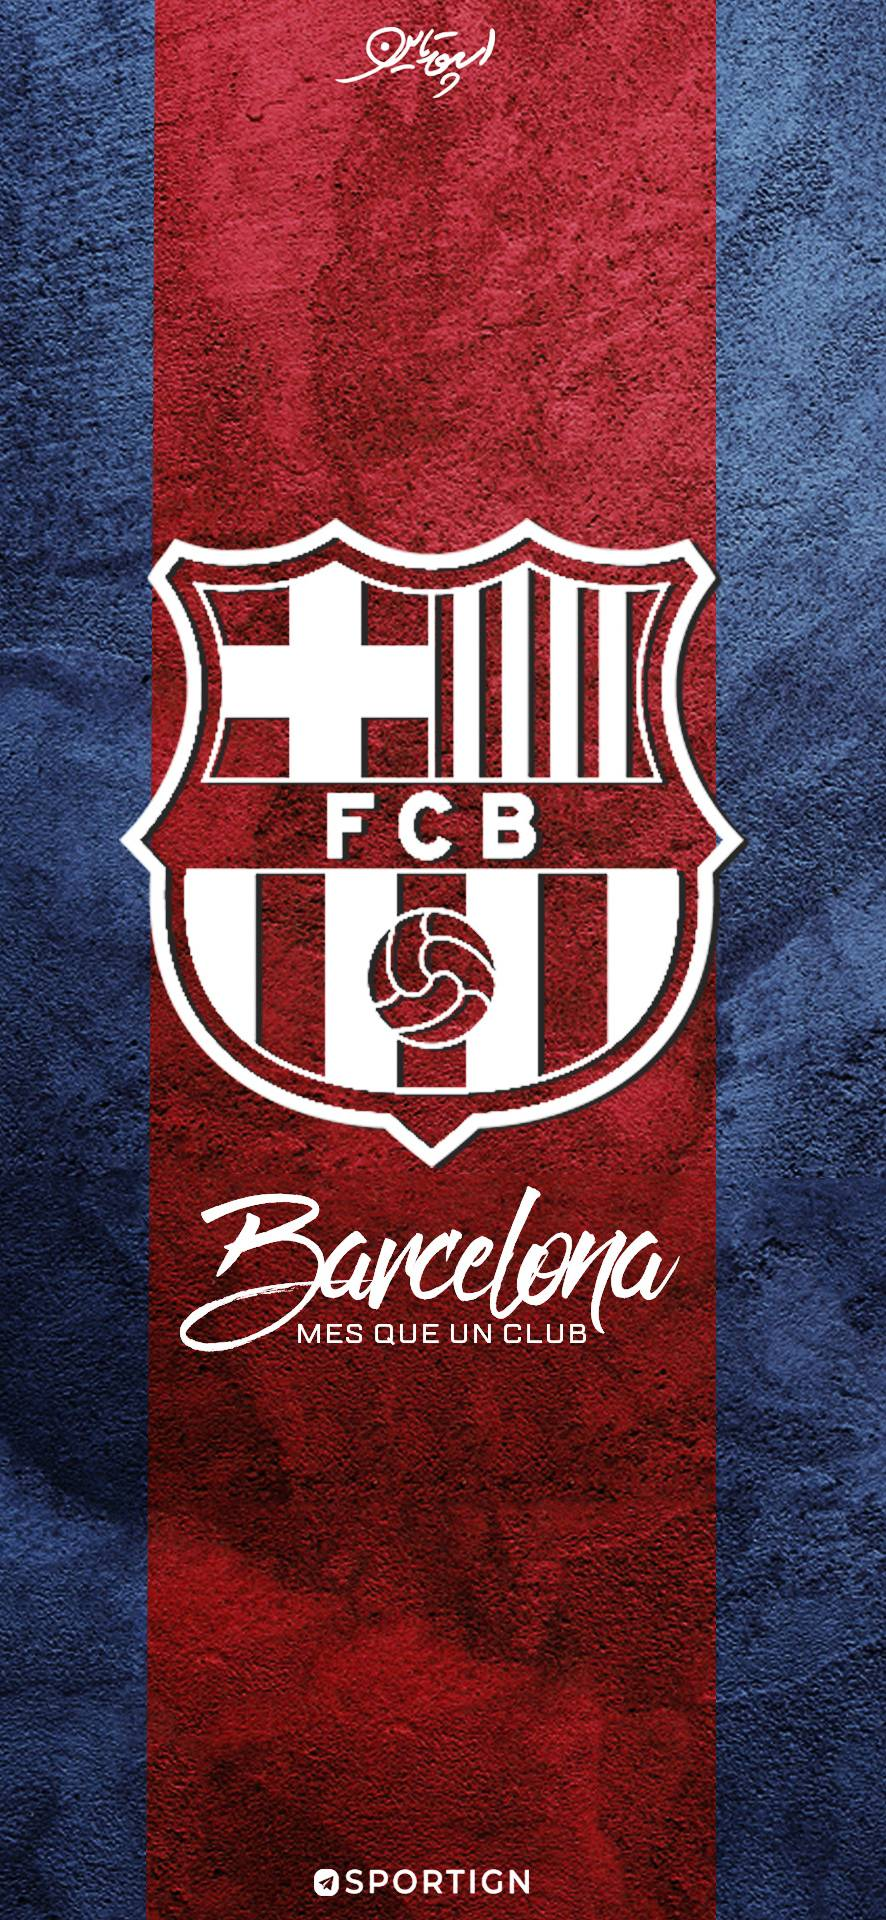 Barcelona 2020 Wallpapers Wallpaper Cave